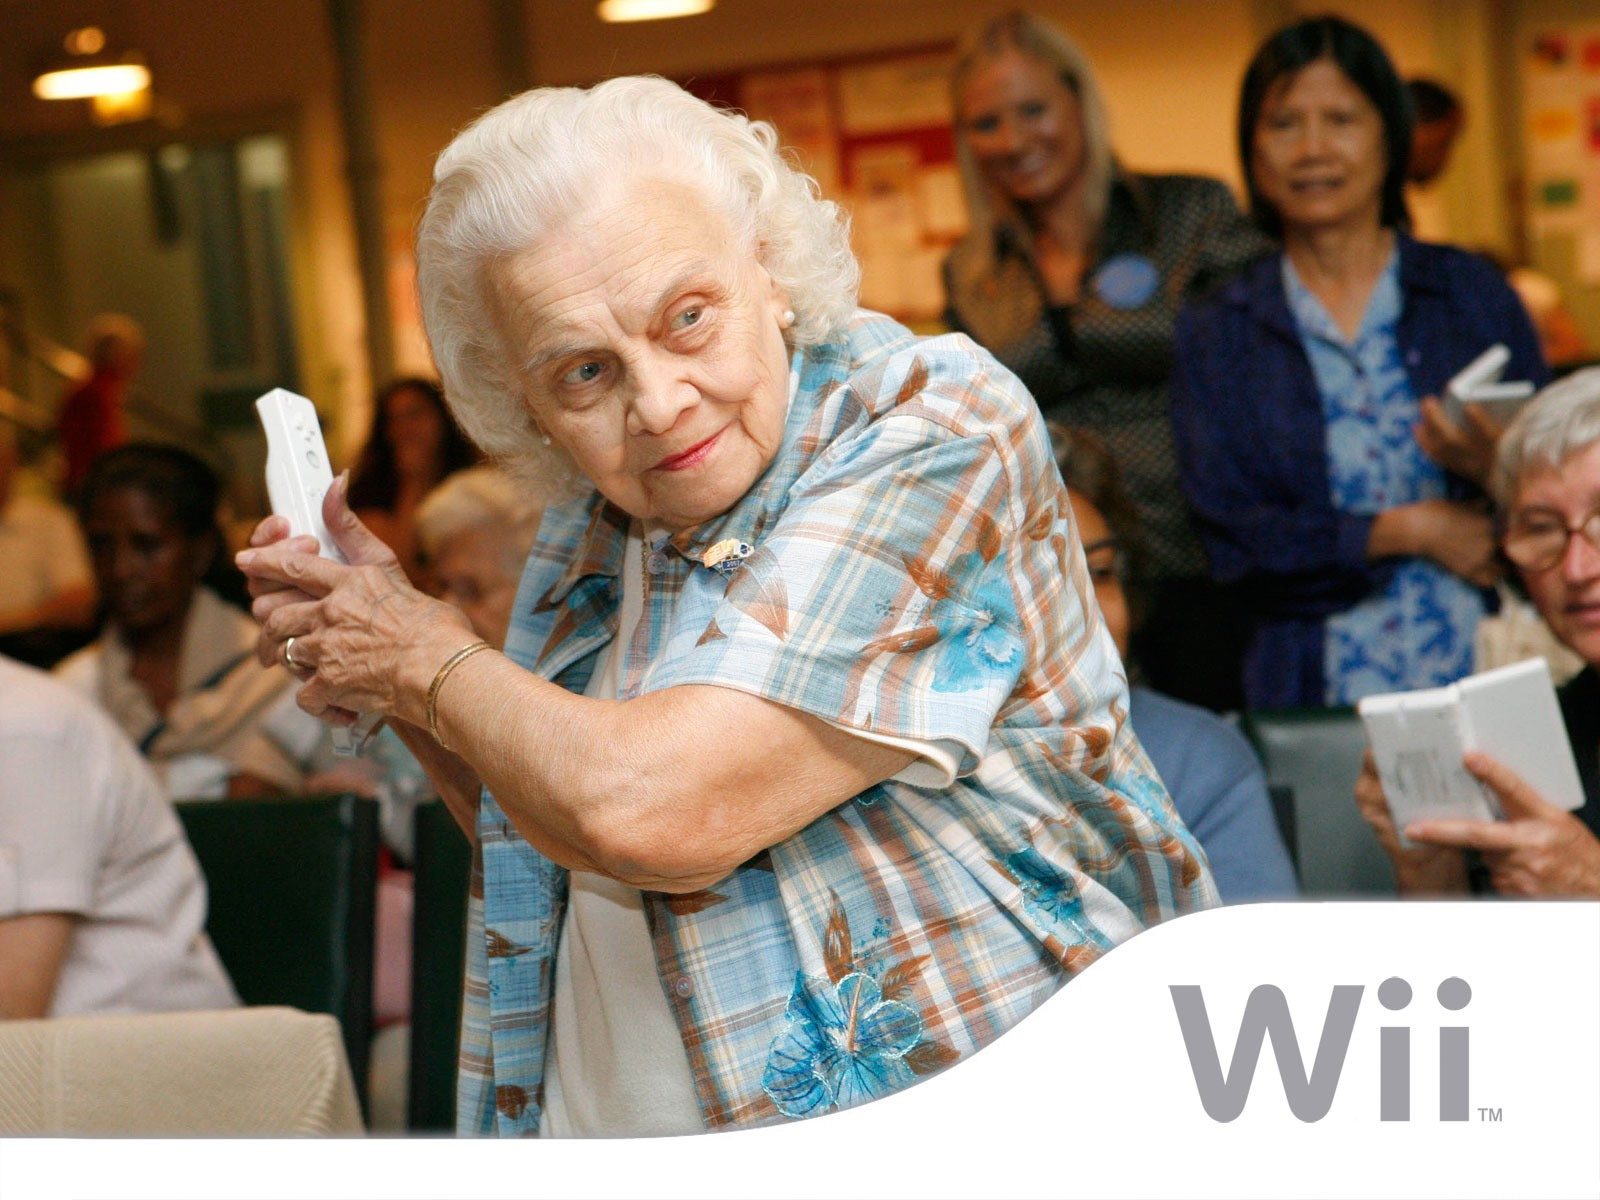 Video Games for Seniors: Wii, Brain Age, Xbox, and ... - WebMD